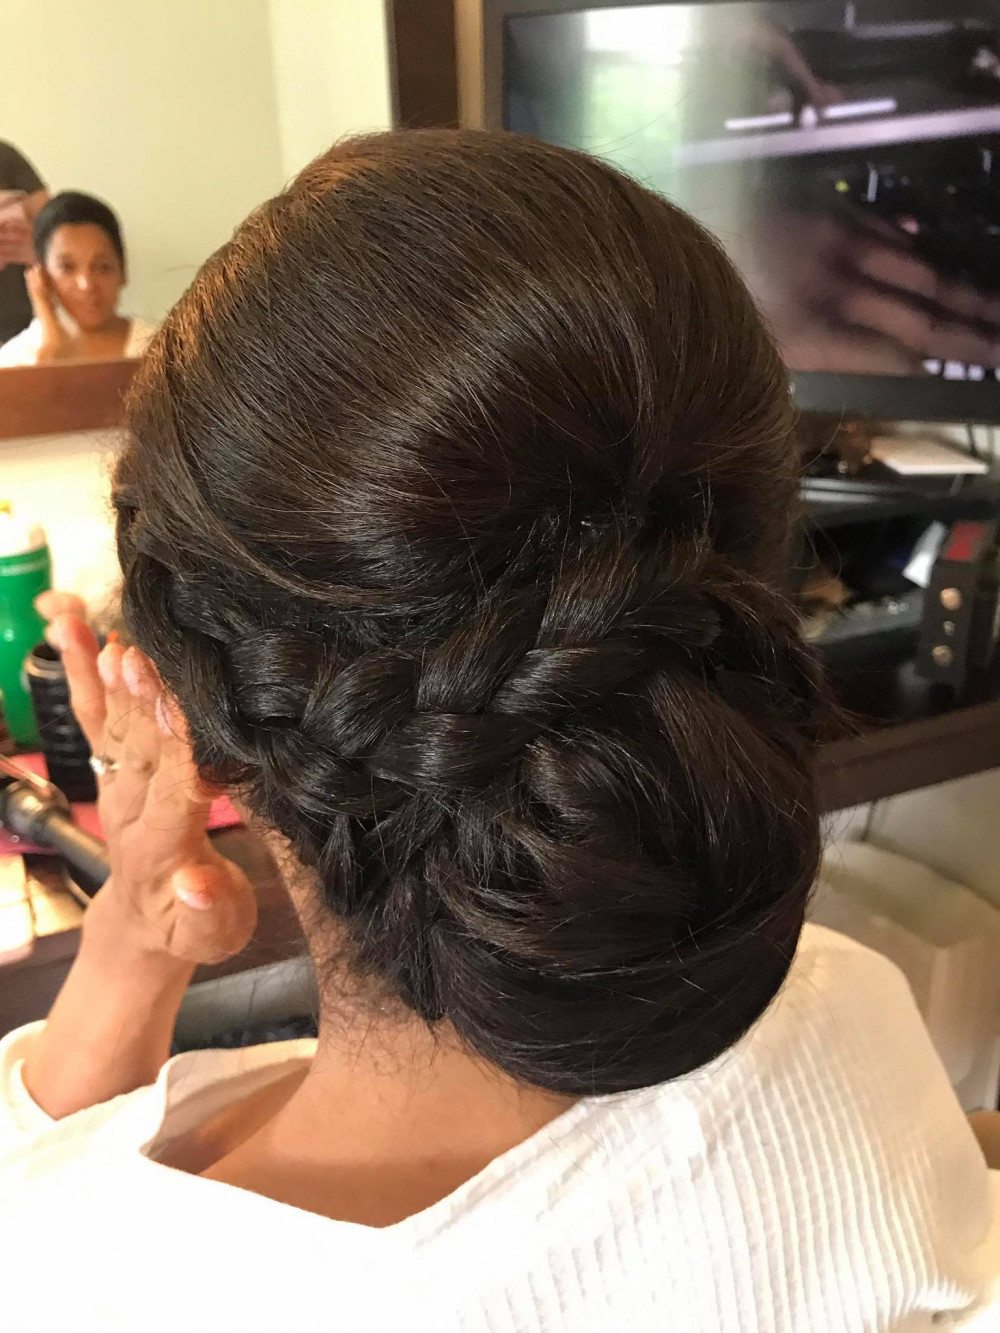 Hair by me - Make Me Bridal Artist: Flame Beauty. #bridalhair #weddinghair #plaits #plaitupdo